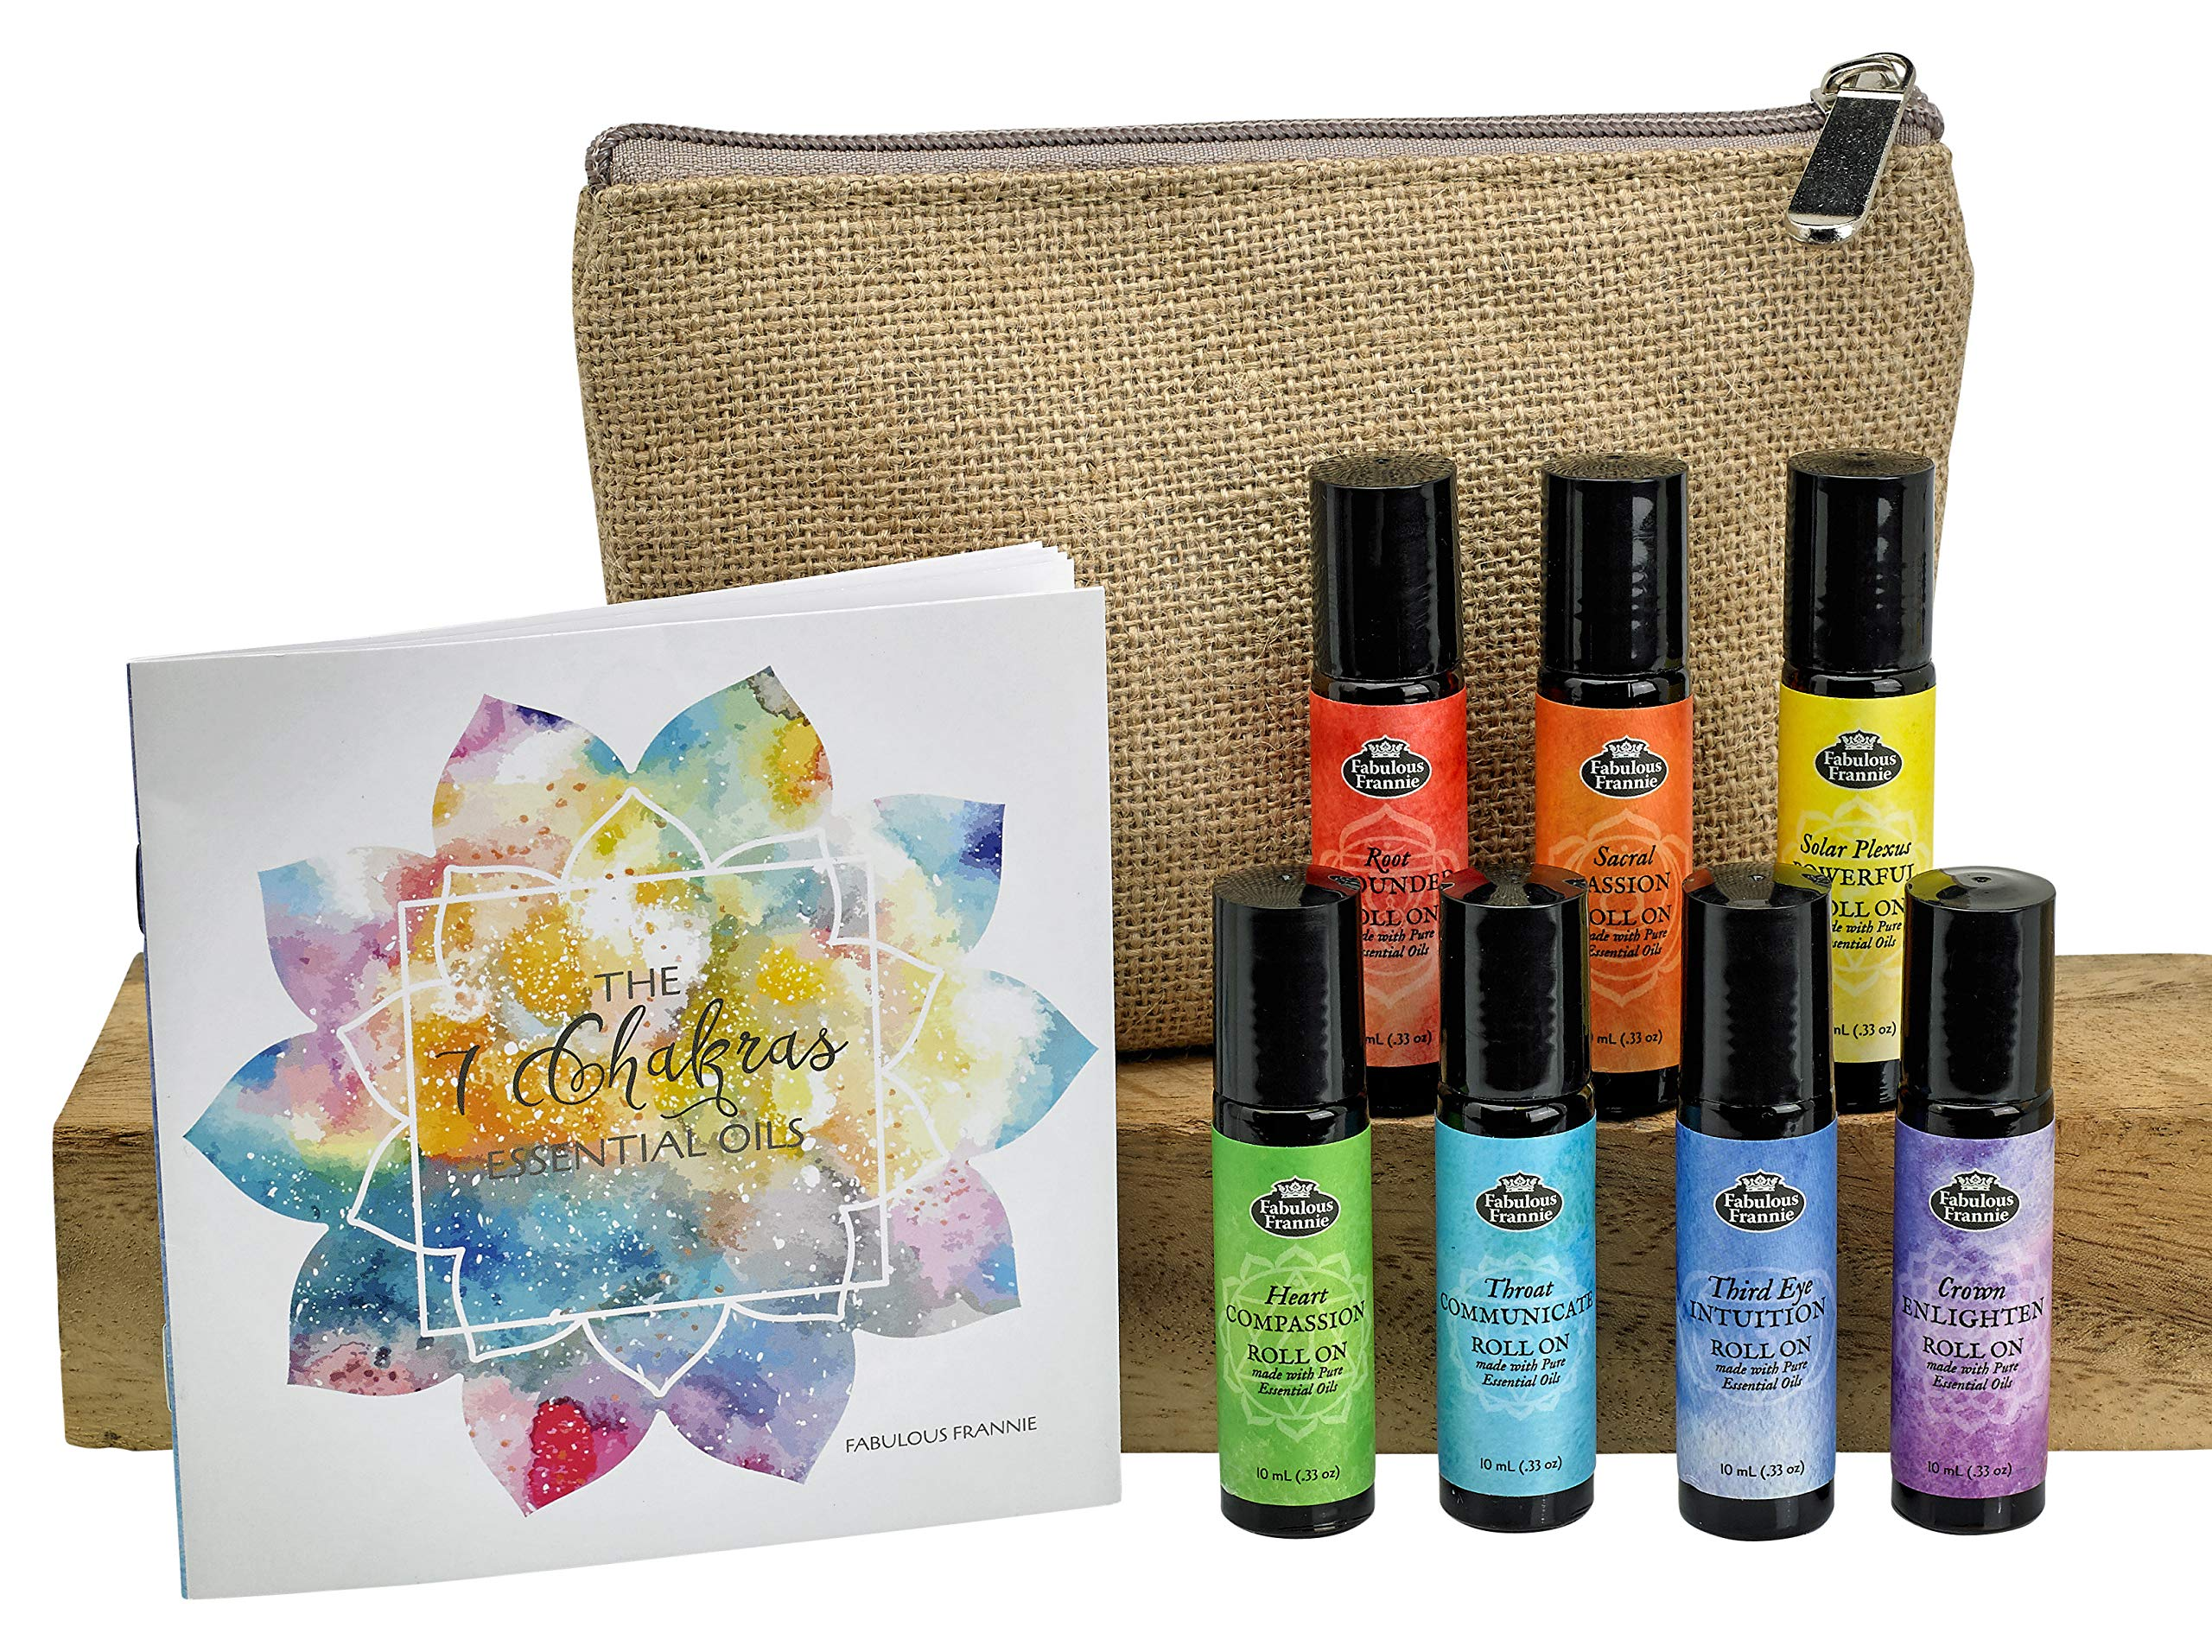 Chakra Complete Pre-diluted Roll On Set with Travel Bag Made with Pure Essentials Oils by Fabulous Frannie